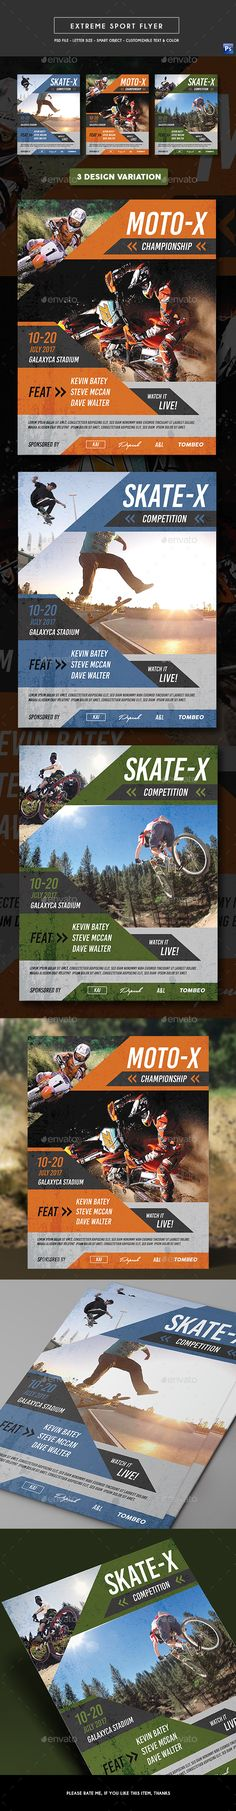 Extreme #Sports #Flyer - Sports Events Download here: https://graphicriver.net/item/extreme-sports-flyer/19716860?ref=alena994